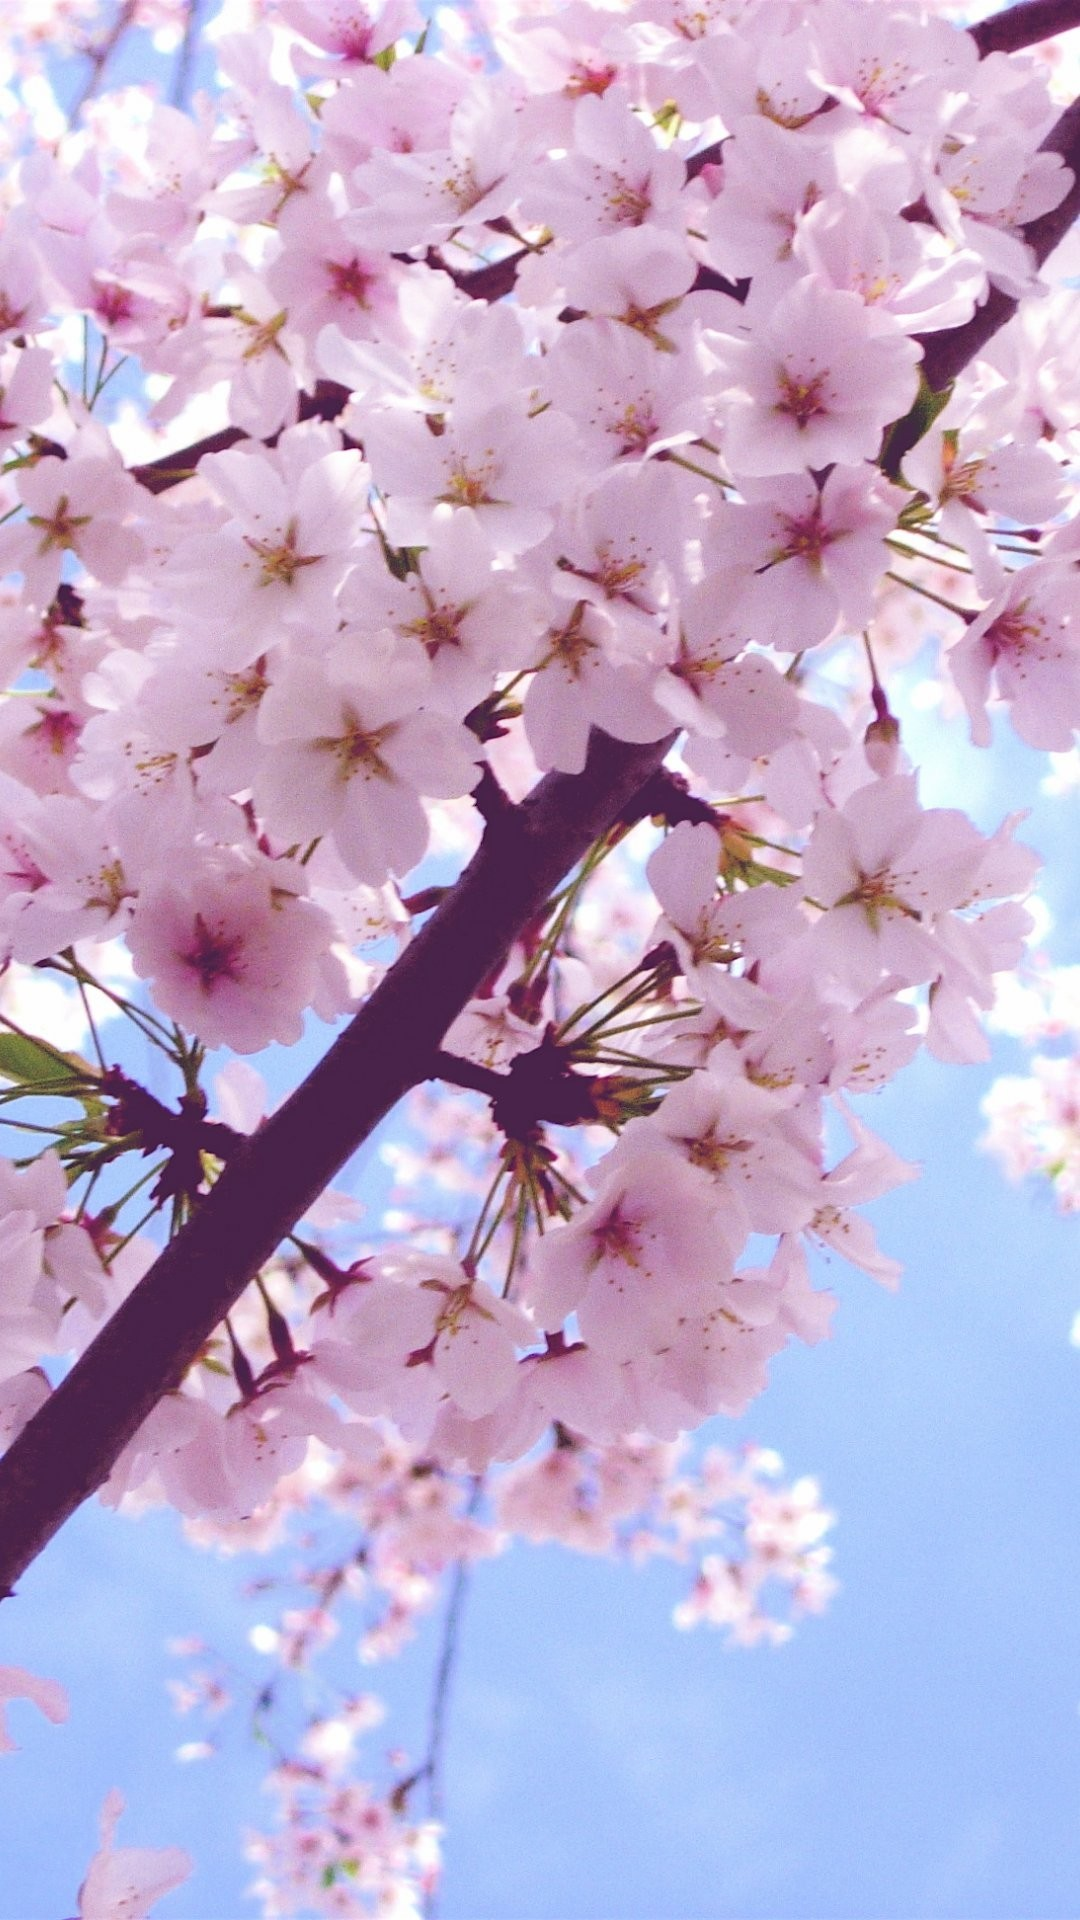 Cherry Blossom iPhone 6 Plus Wallpaper 6556 – Flowers iPhone 6 Plus  Wallpapers